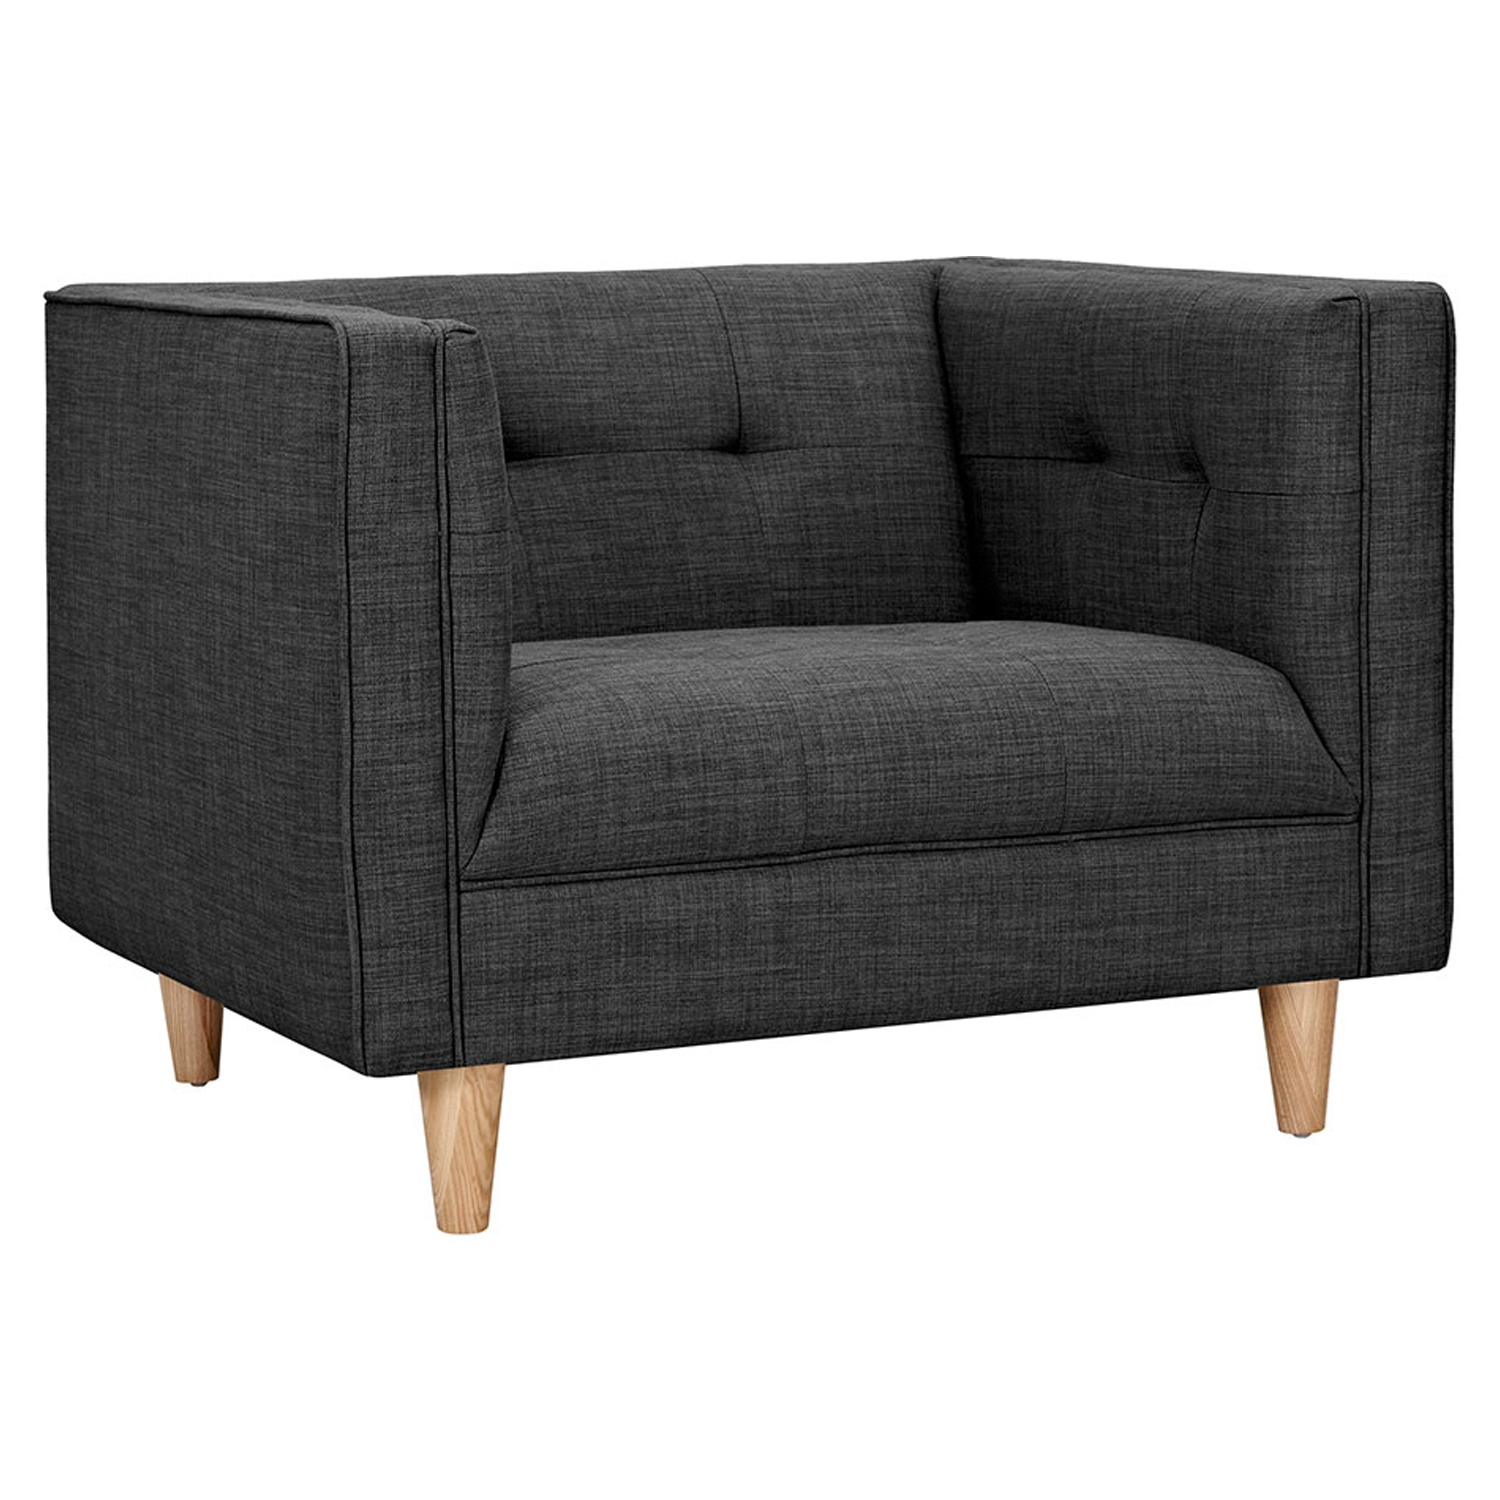 Kaja Armchair - Charcoal Gray, Tufted - NYEK-223341